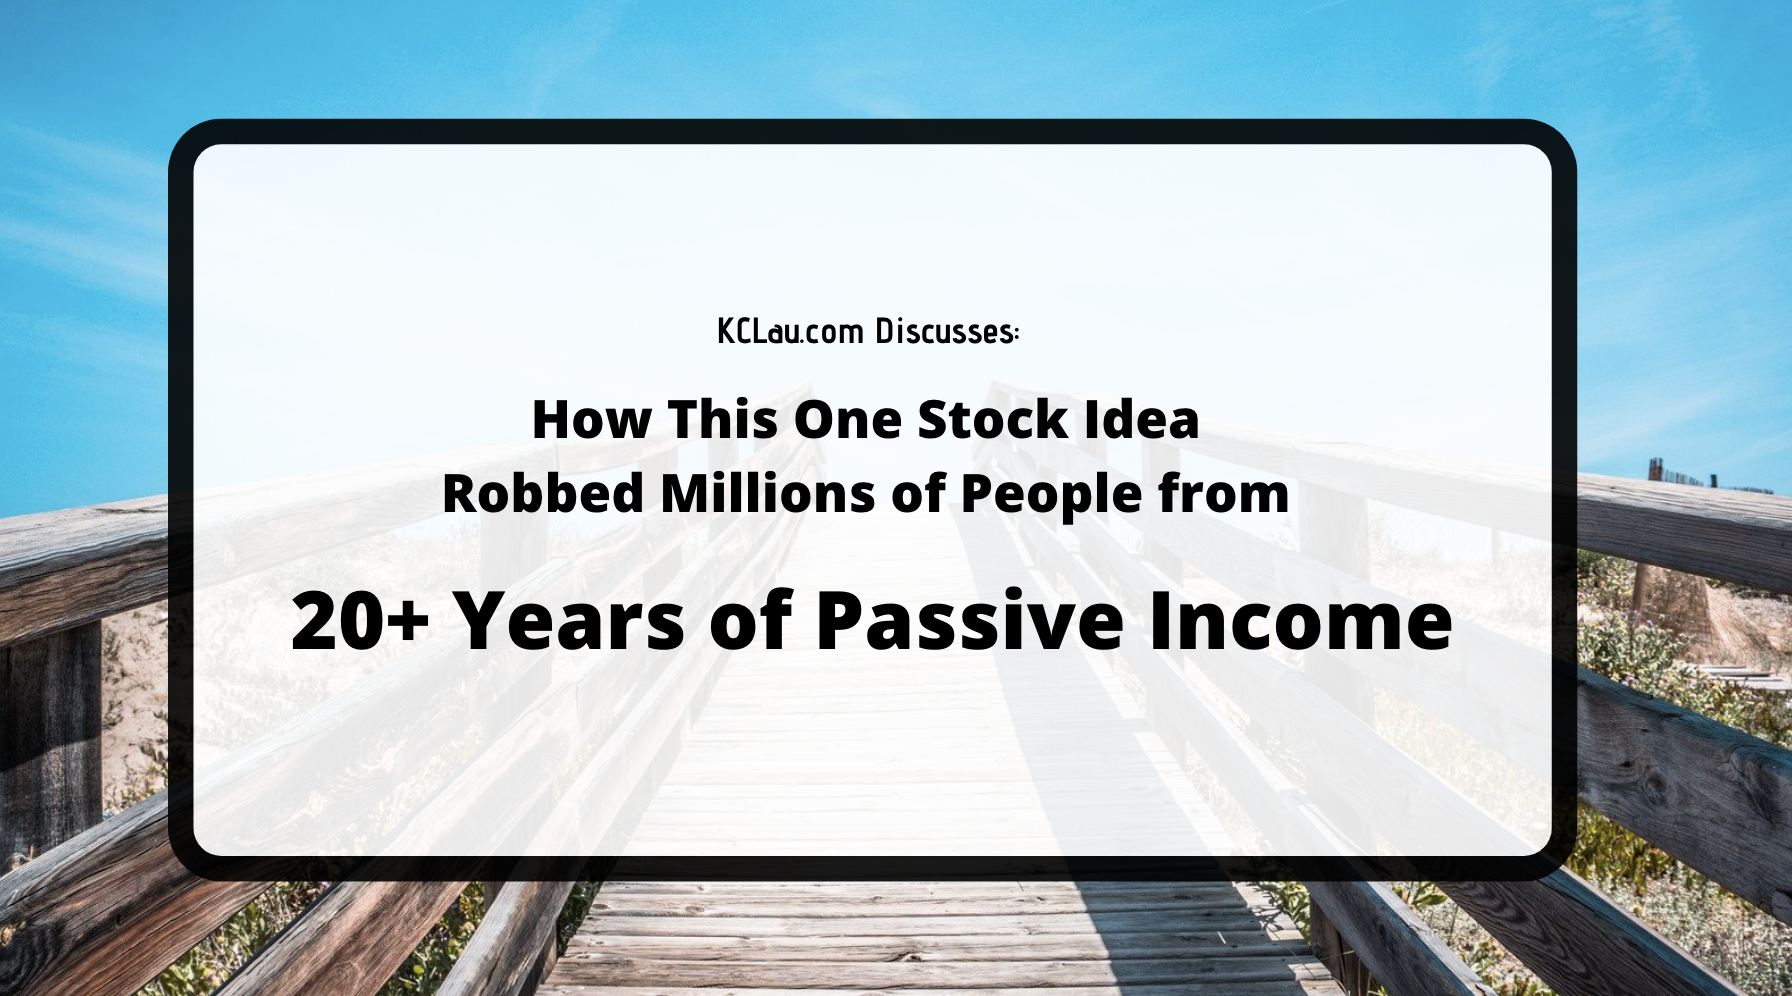 How This One Stock Idea Robbed Millions from 20+ Years of Passive Income?